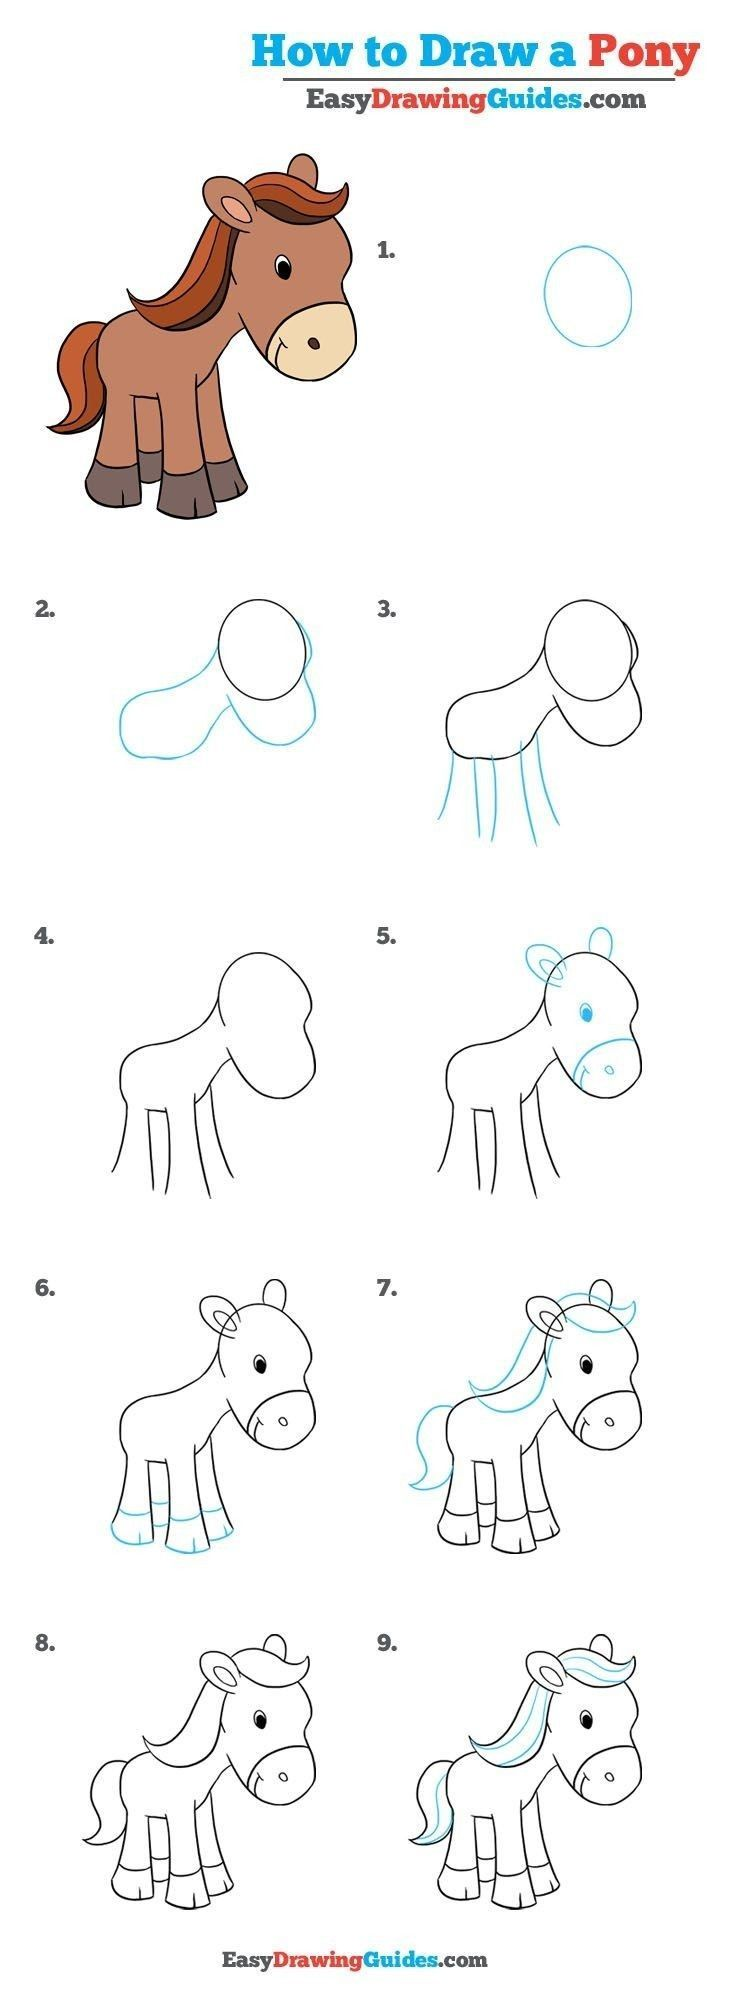 Pin by Christiane Marko on ALLES   Drawing tutorial, Drawing ...